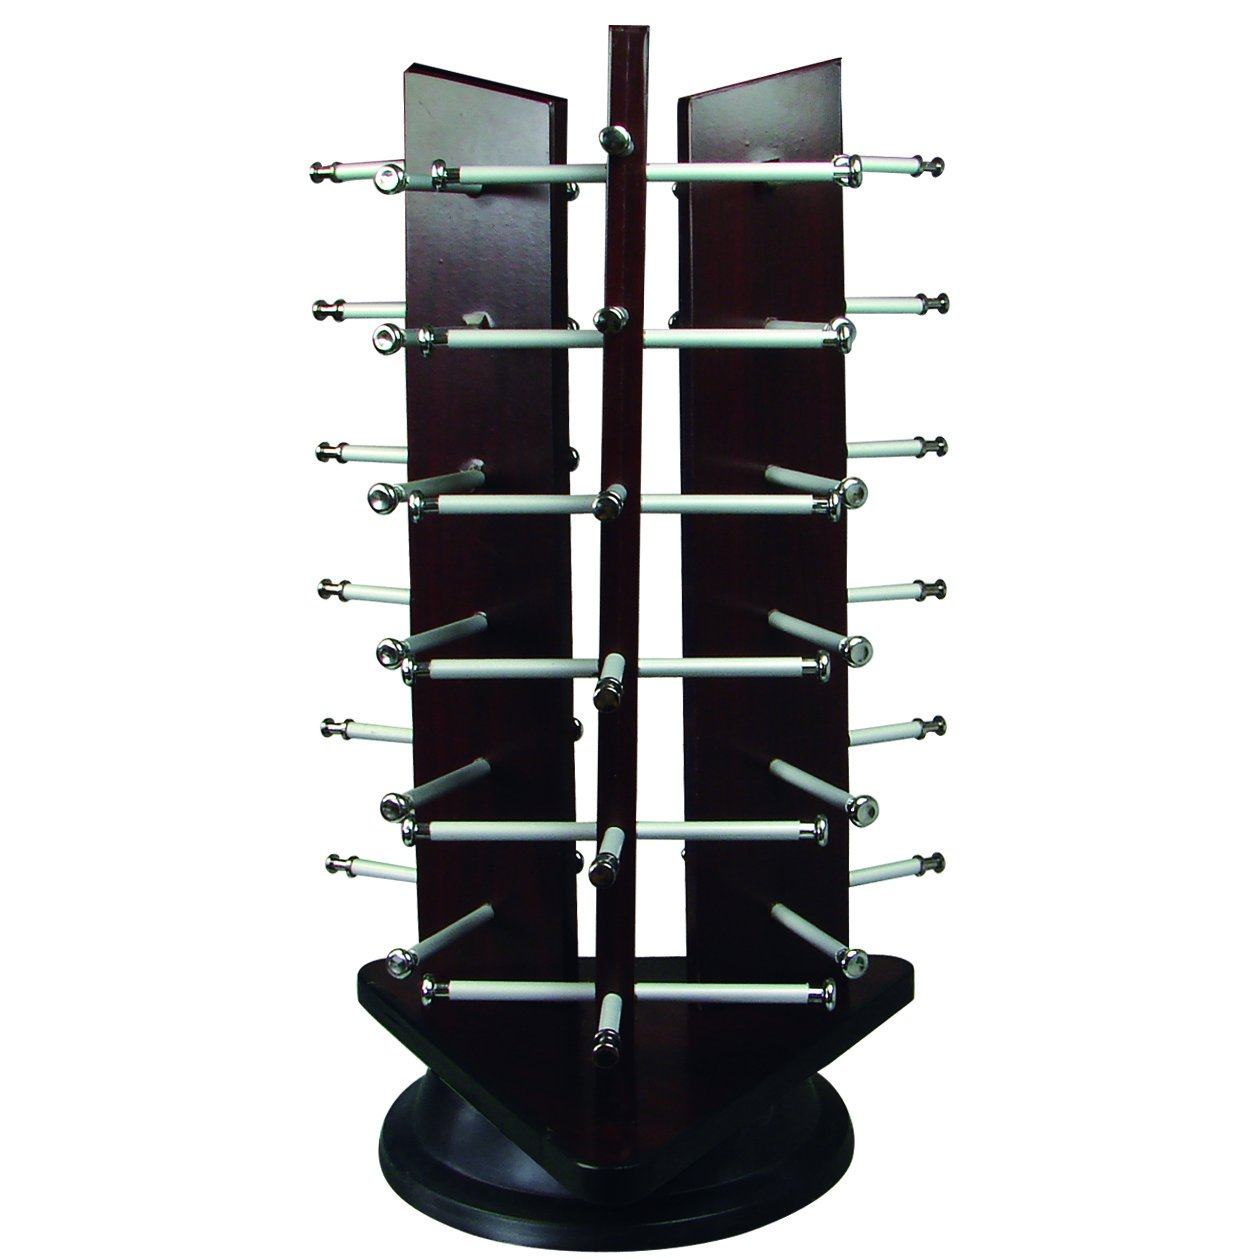 "#AC2824 Rotating Eyeglasses Display Rack. 18 Frames. 10 1/4"" X 10 1/4"" X 20""H 